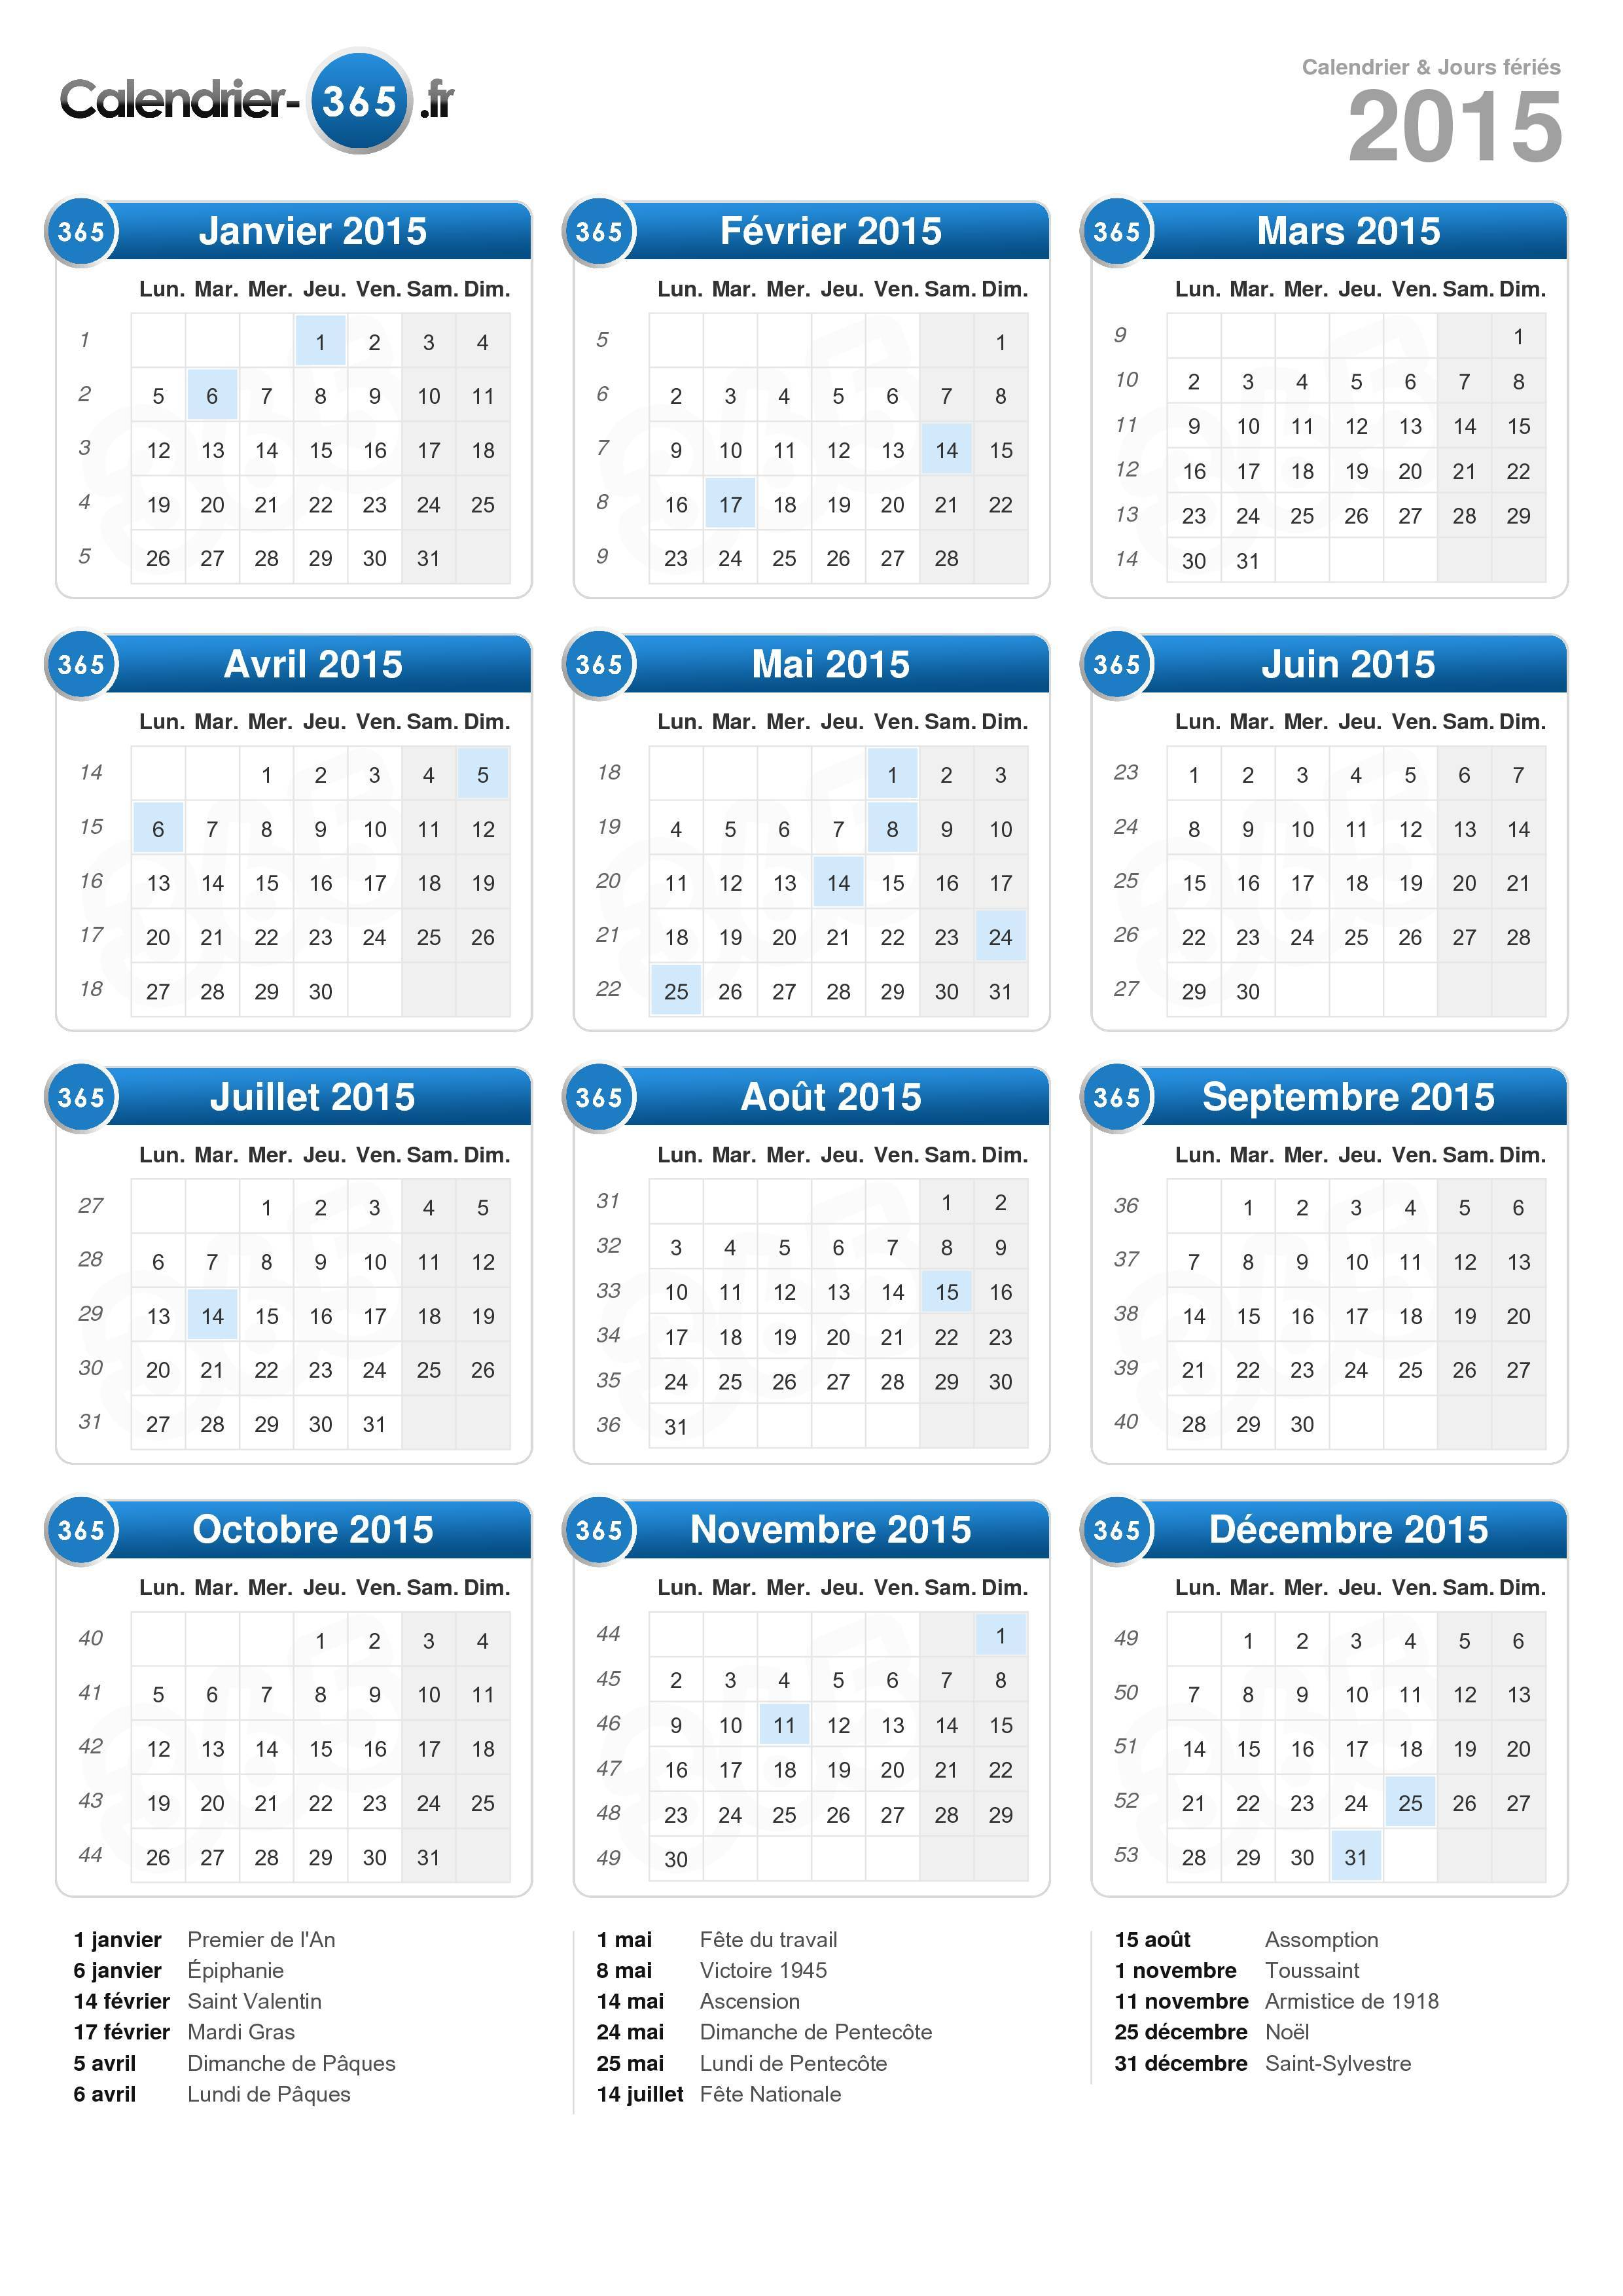 Images Blog: CALENDRIER 2015